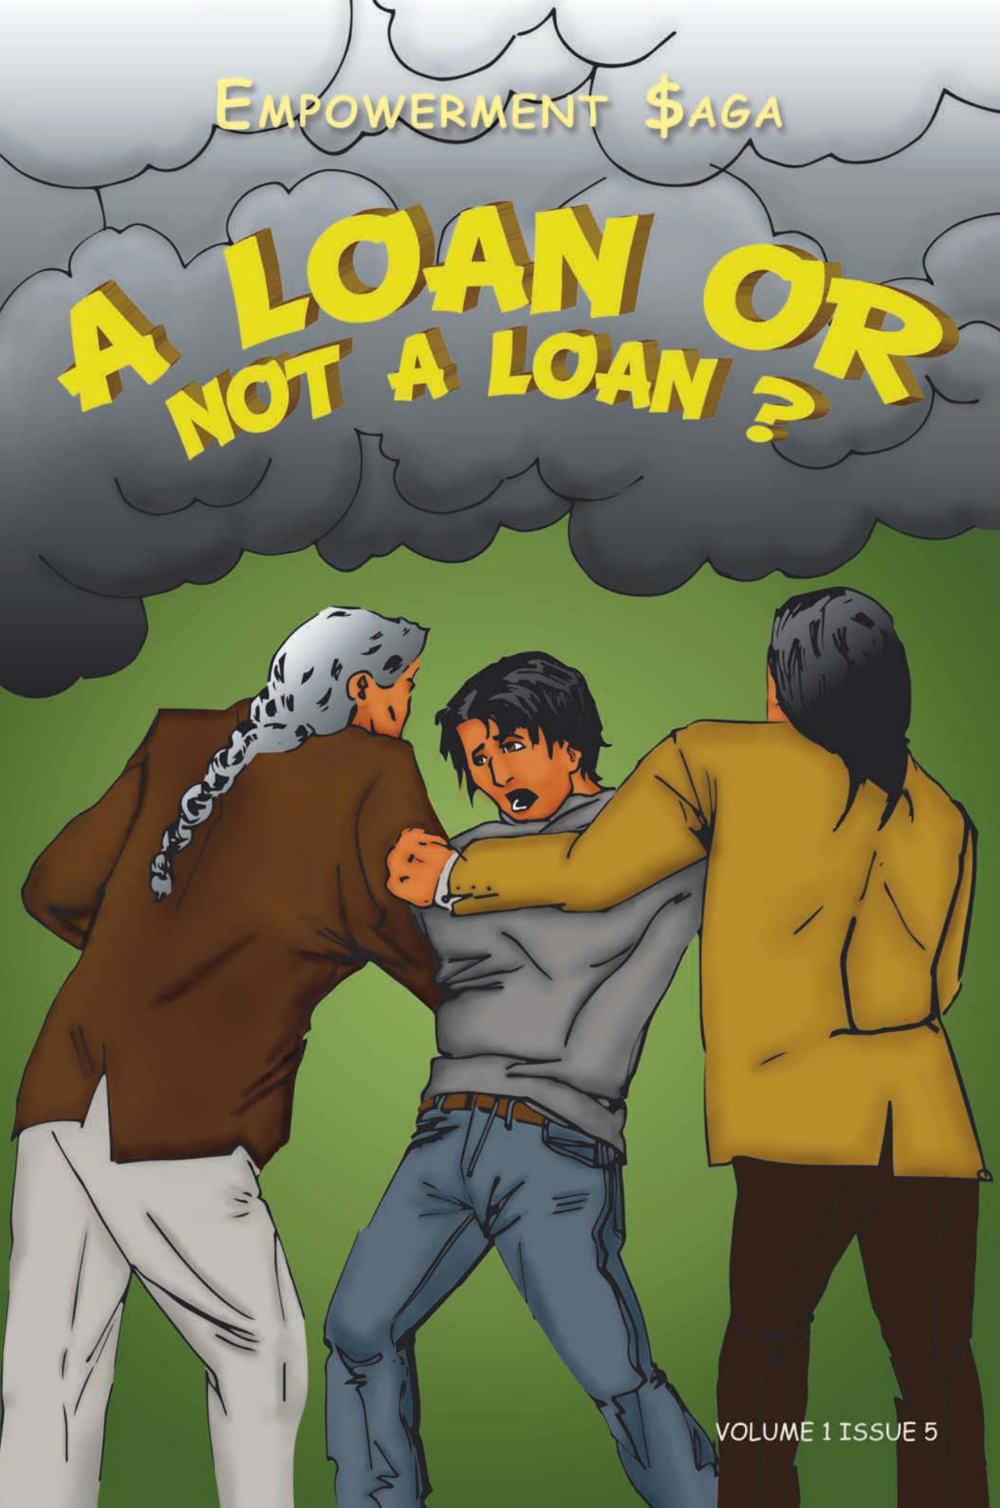 Book 5: A Loan or Not a Loan?